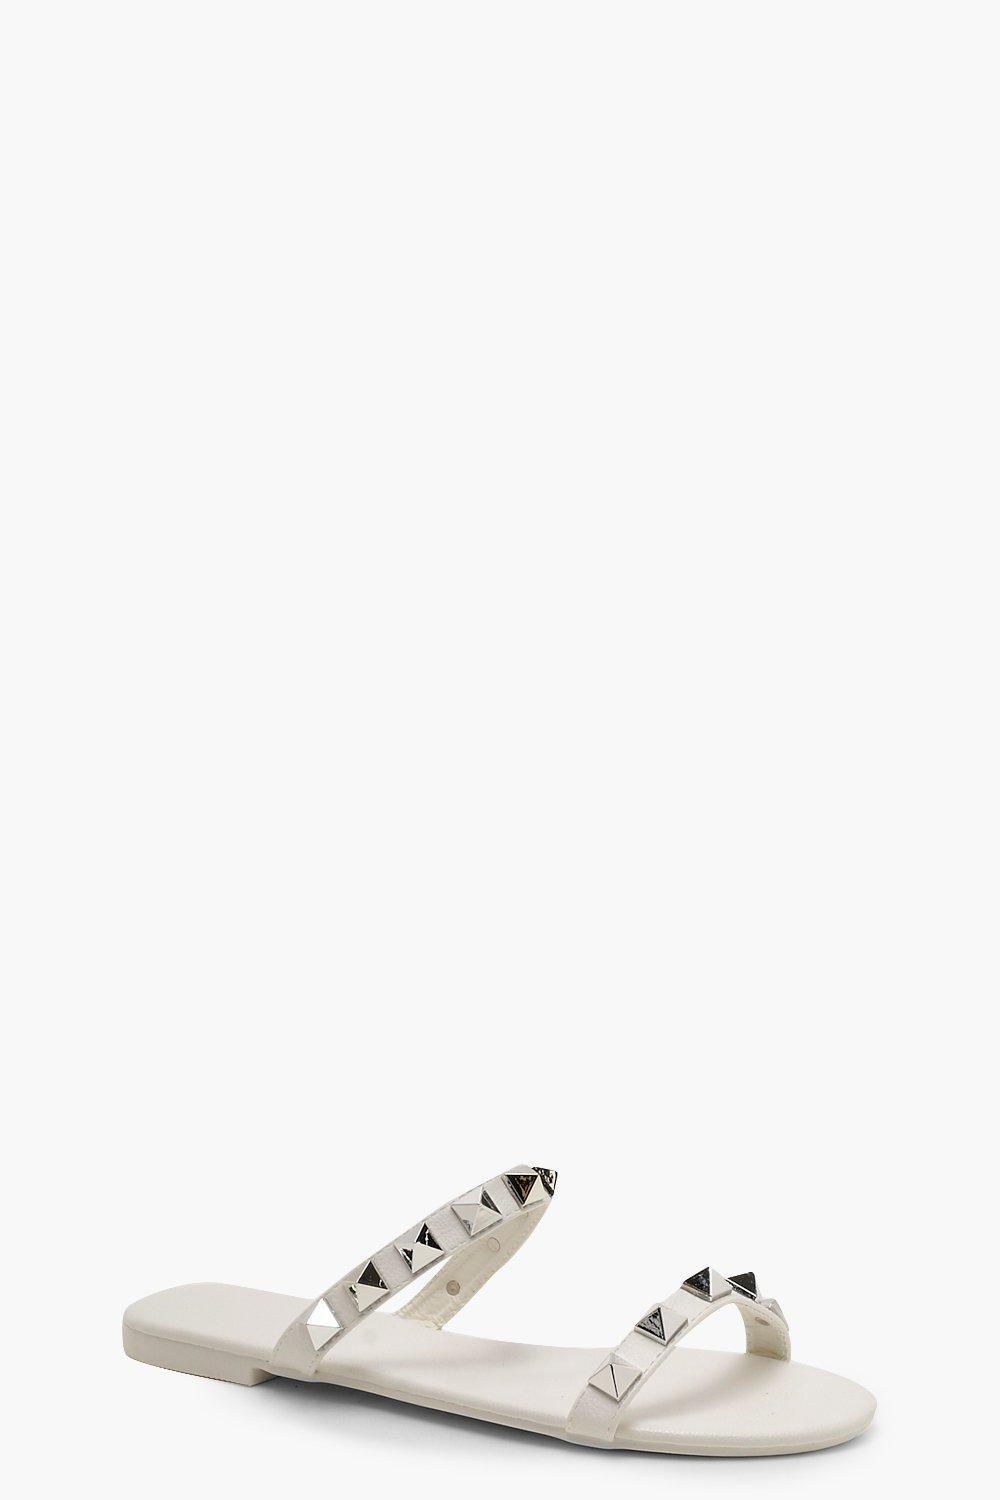 9e34f4993 Boohoo Studded Double Band Sliders in White - Lyst